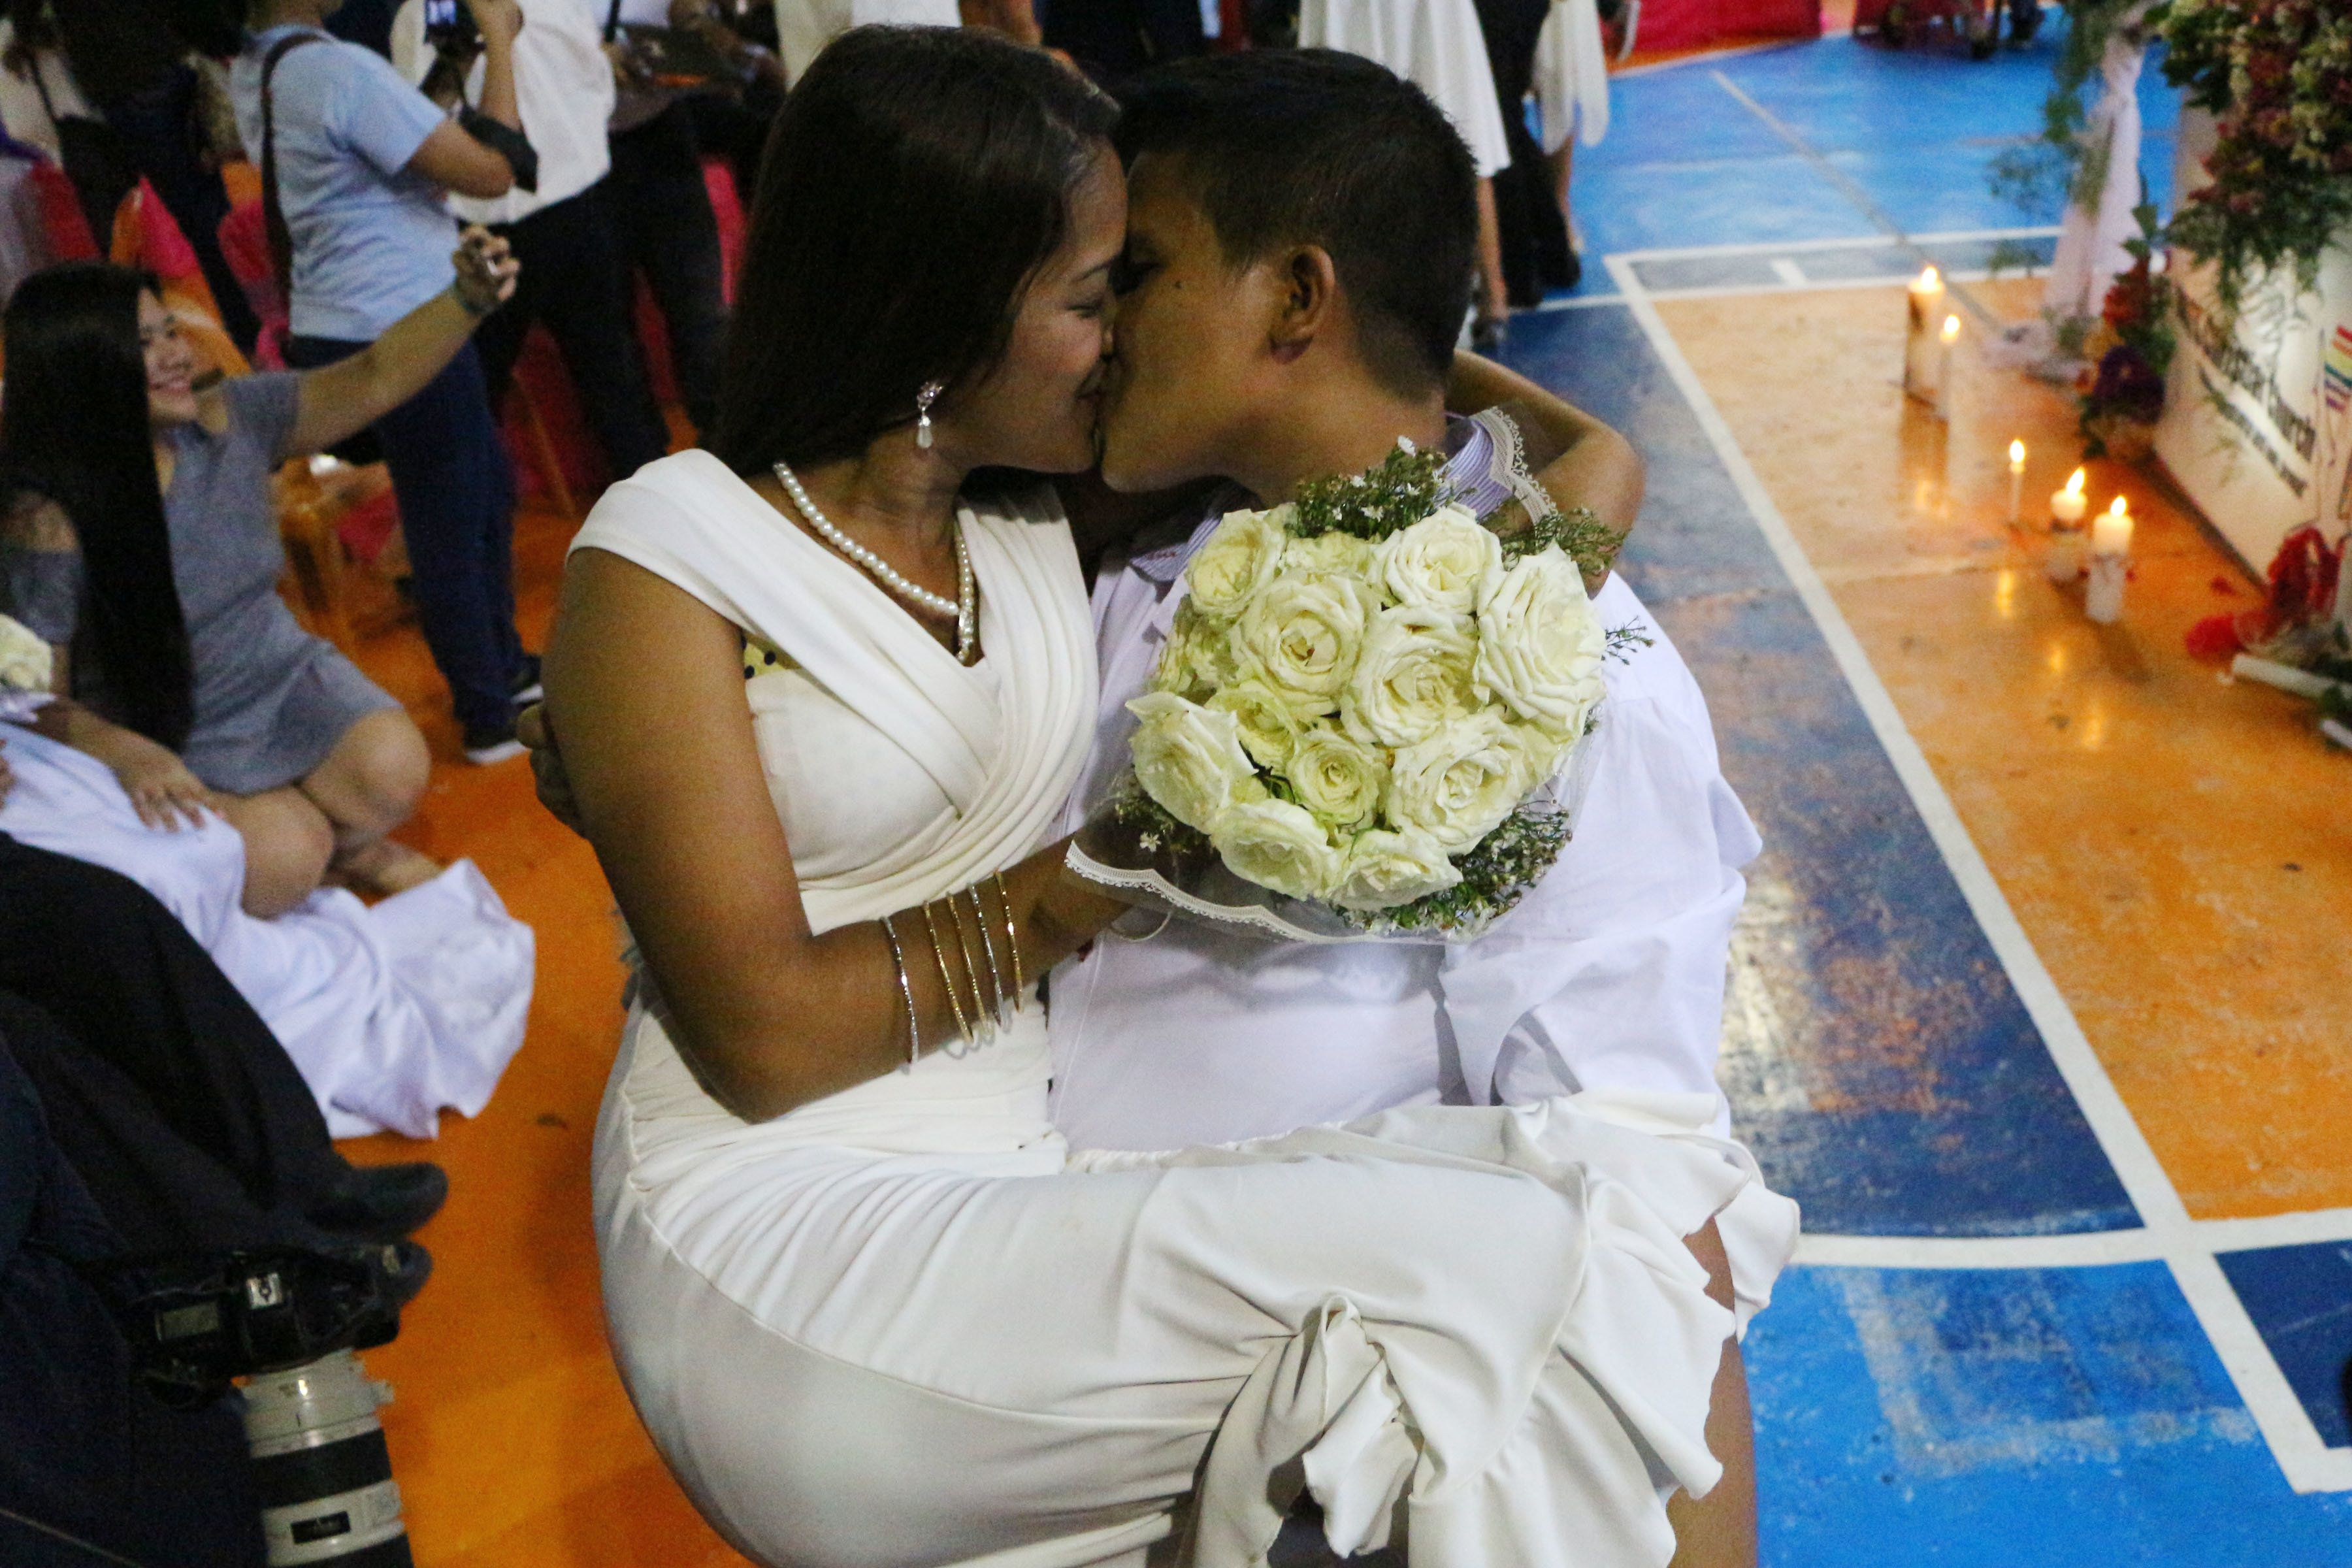 PHILIPPINES - 2016/06/26: Filipino LGBT (Lesbian, Gay, Bisexual and Transgender) couples Mercy Tuibeo, 32 yrs old (right) carry Virgie Icawat, 20 yrs old (left) and kiss each other during the wedding  each after the mass wedding officiated by Rev. CJ Agbayani Jr. of LGBT Christian Church at Mendoza Covered Court in Brgy. Pinalabanan. (Photo by Gregorio B. Dantes Jr./Pacific Press/LightRocket via Getty Images)